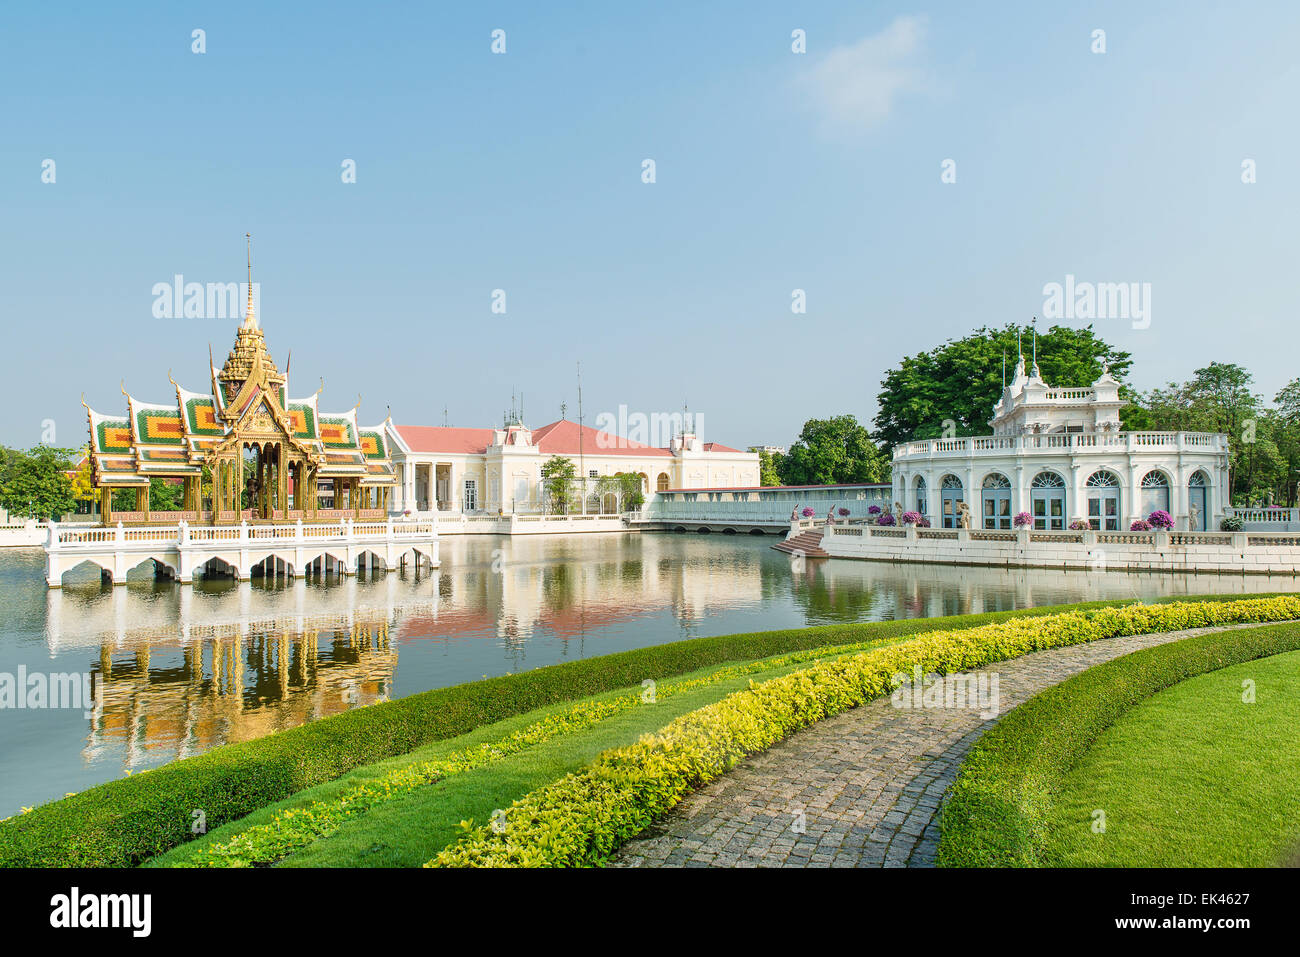 Bang Pa-In Royal Palace, Ayutthaya, Thailand - Stock Image